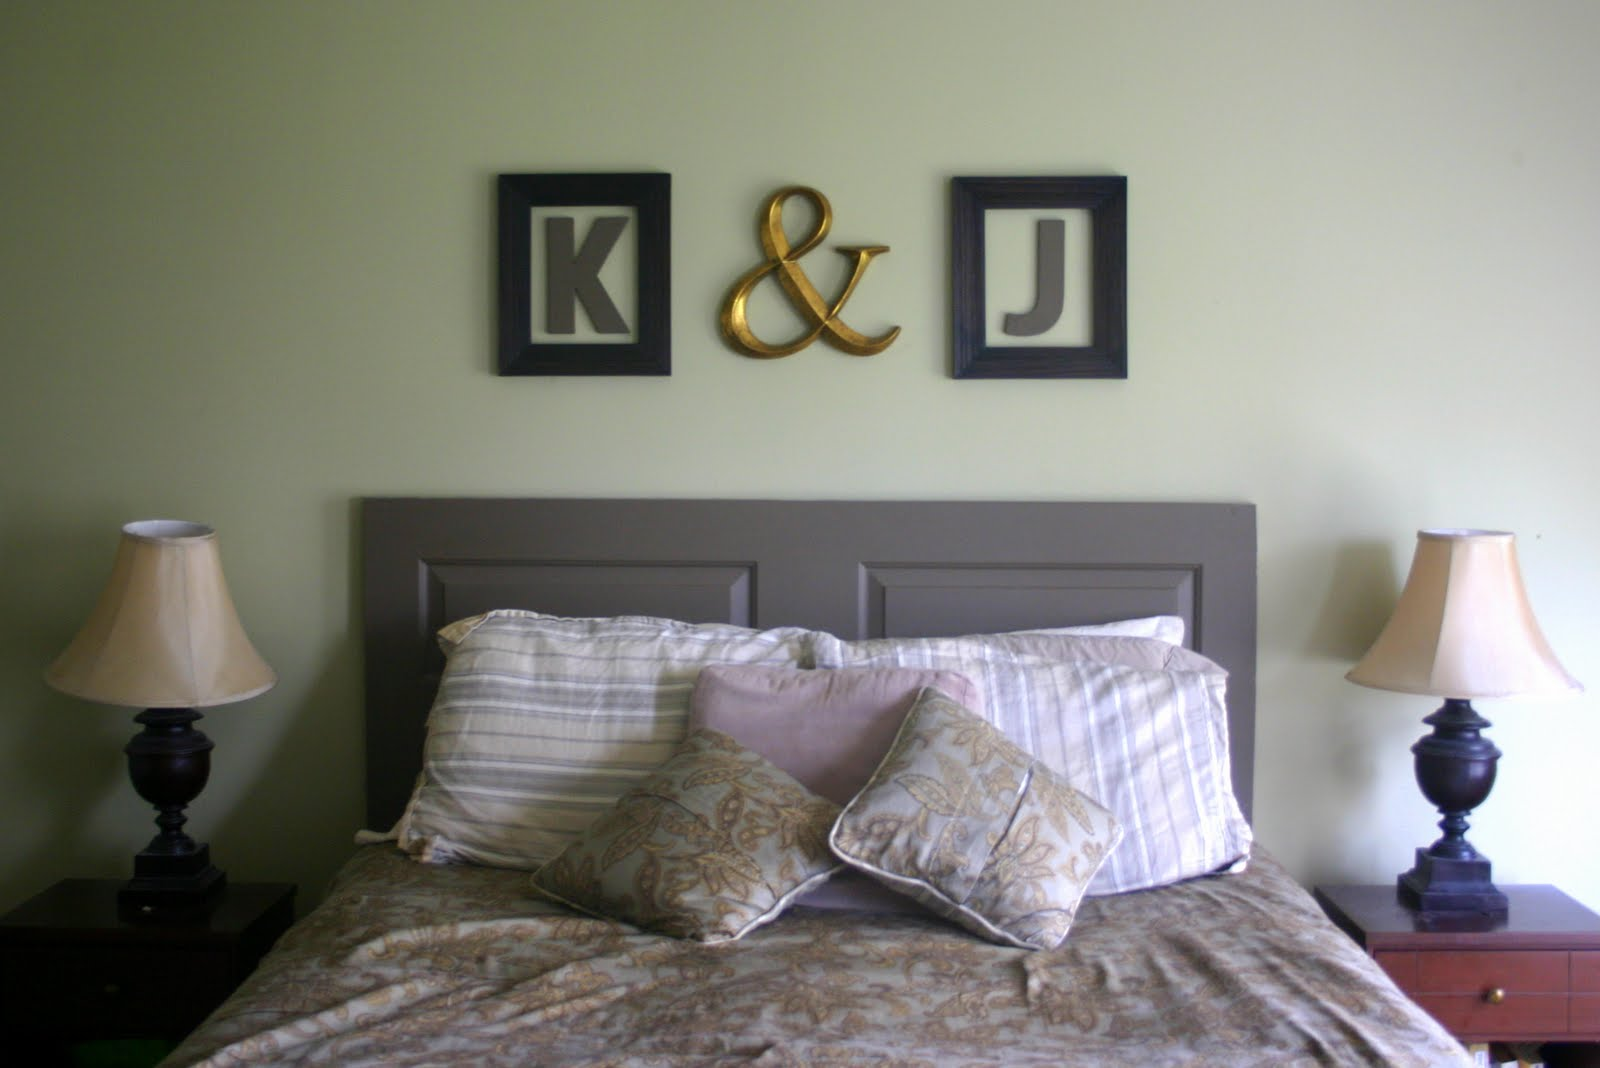 Diy Headboards Diy Headboards East Coast Creative Blog